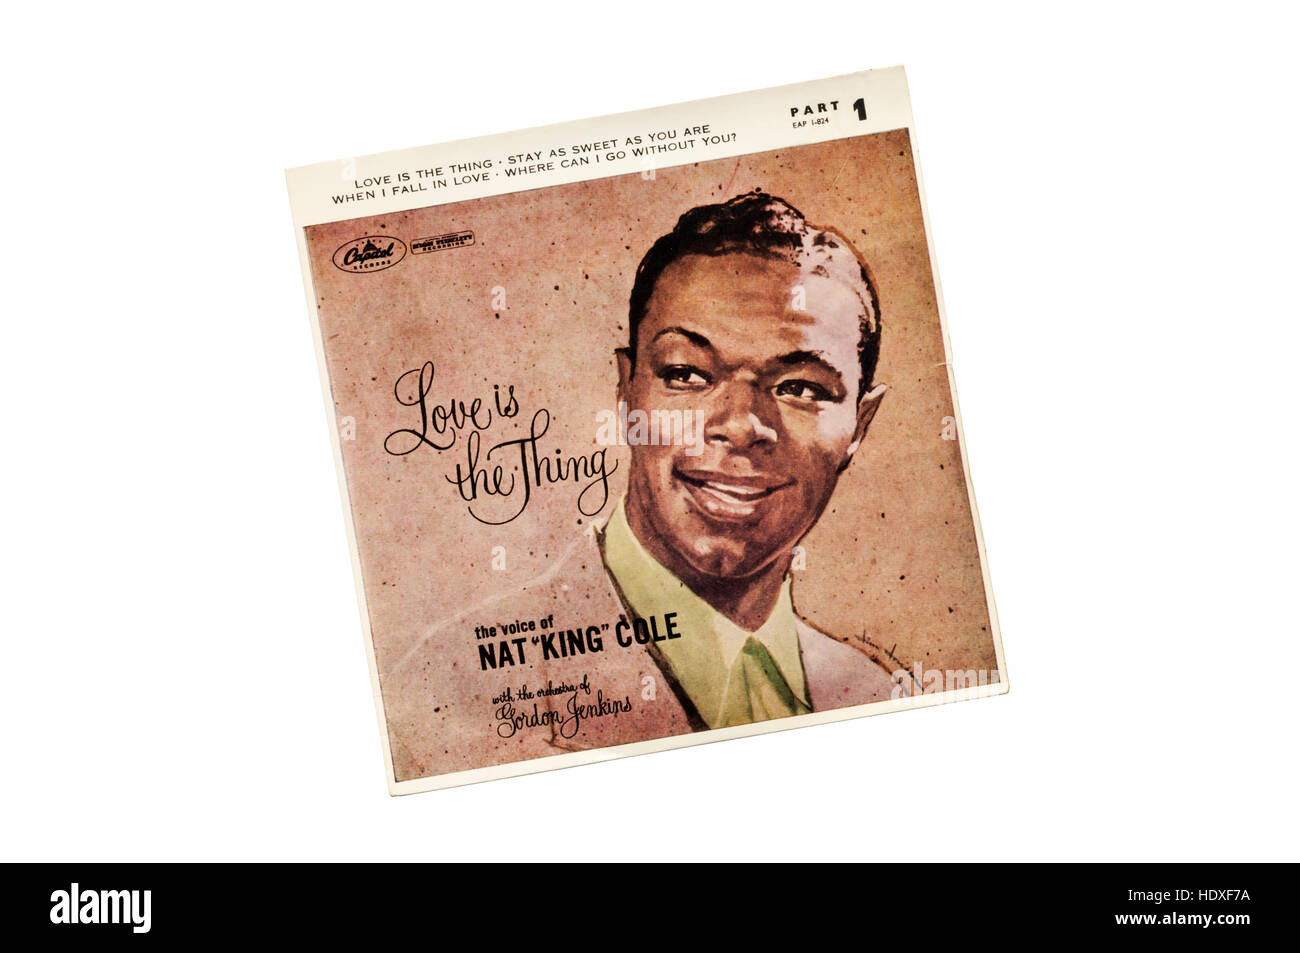 Love is the Thing by Nat 'King' Cole released in 1957. - Stock Image